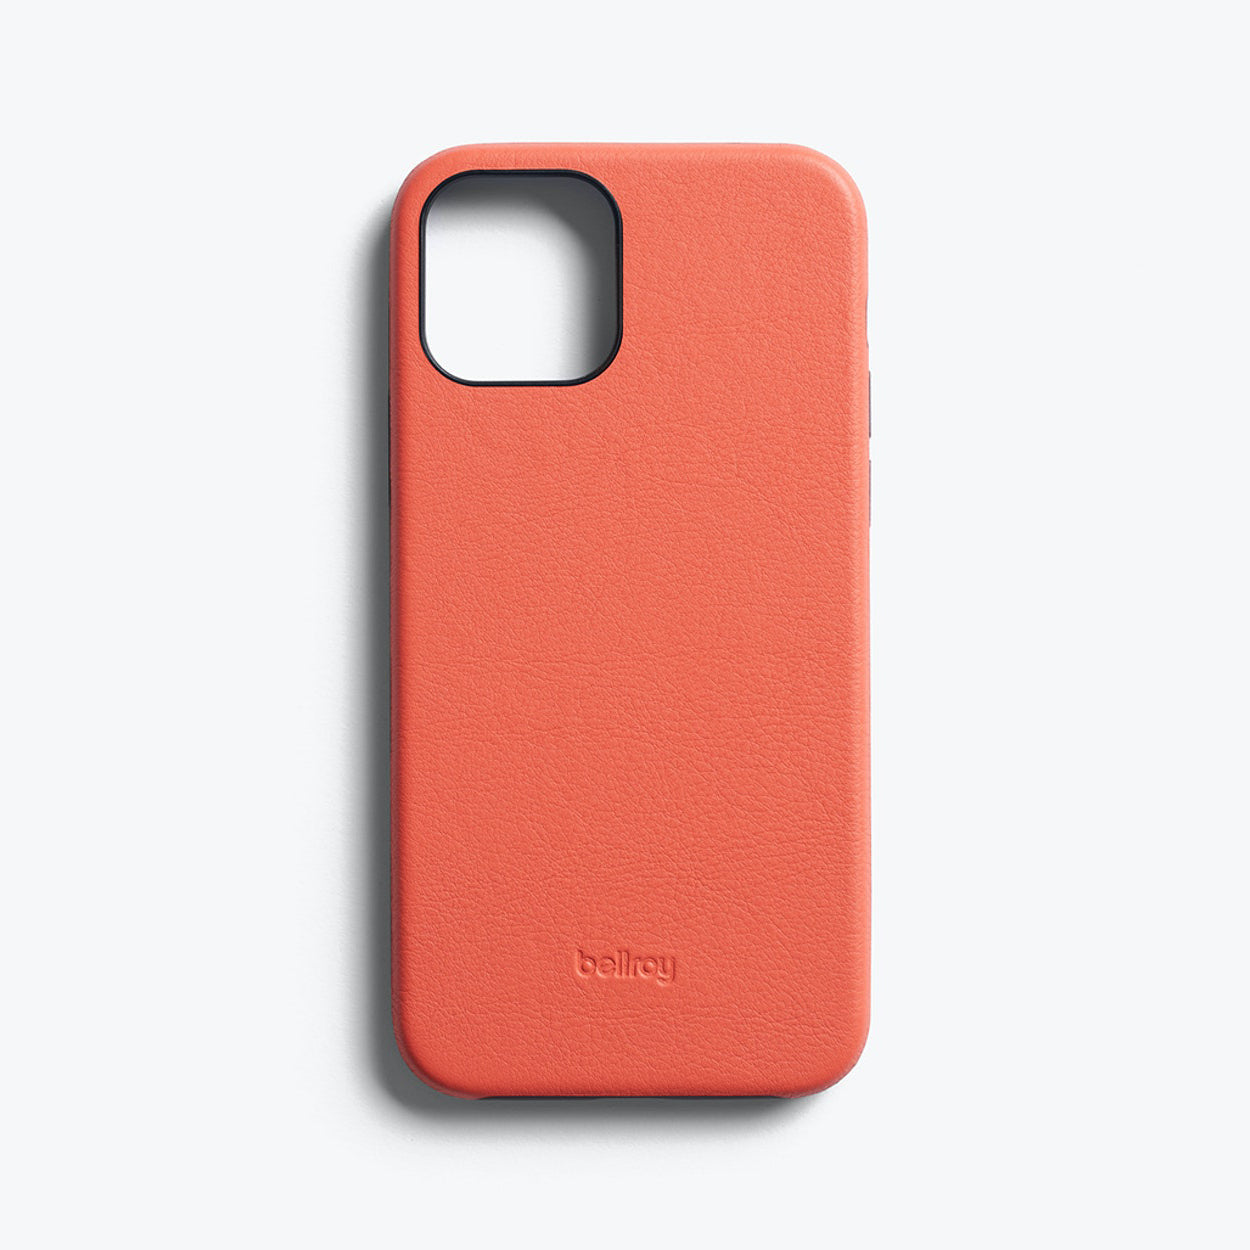 Bellroy Slim Genuine Leather Case For iPhone iPhone 12 mini - CORAL